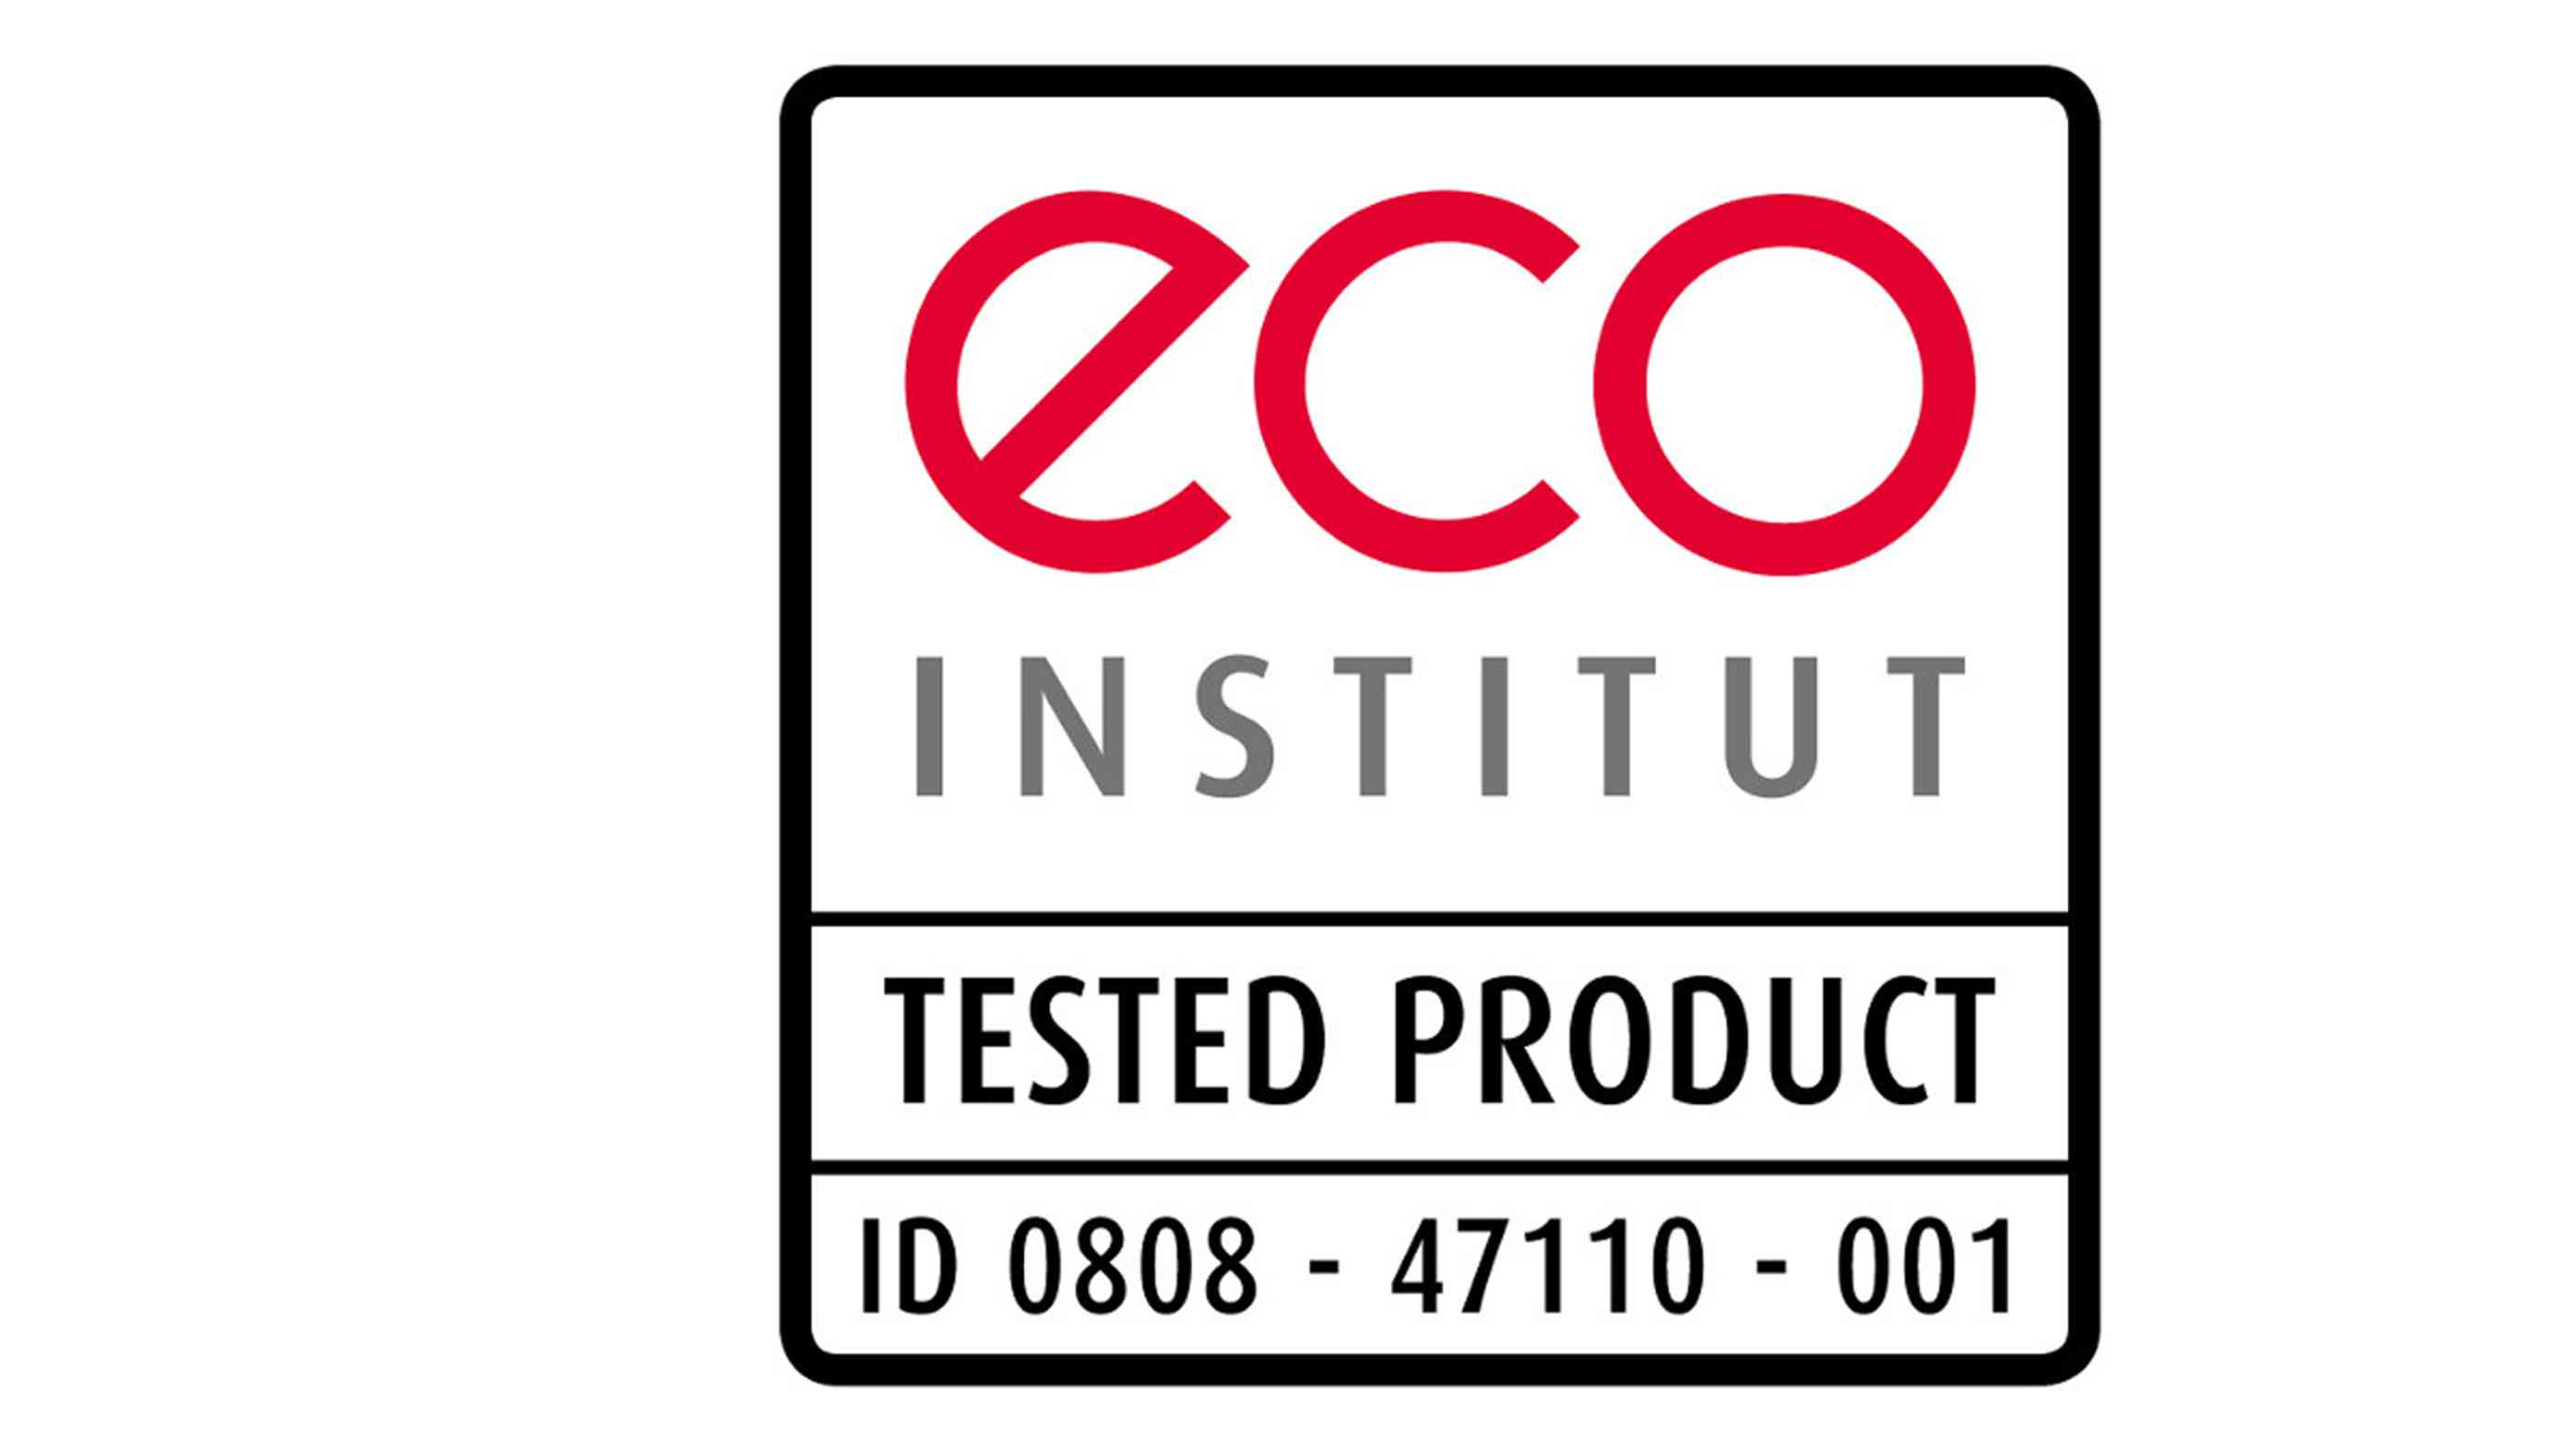 Das Logo vom Eco Institut/Tested Products